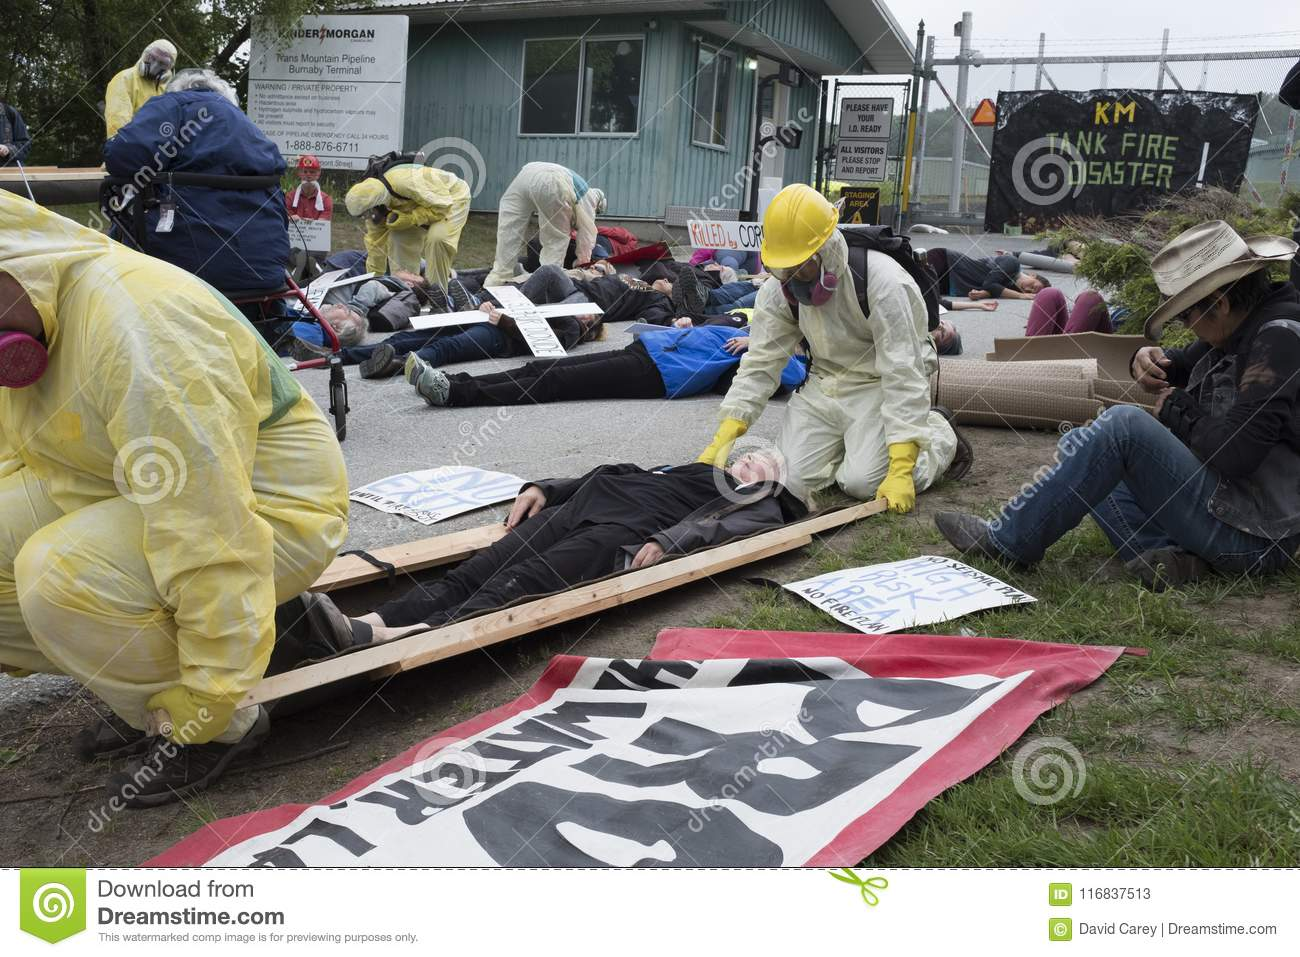 Kinder Morgan protesters stage a die in at the Kinder Morgan tank farm on Burnaby Mountain, BC